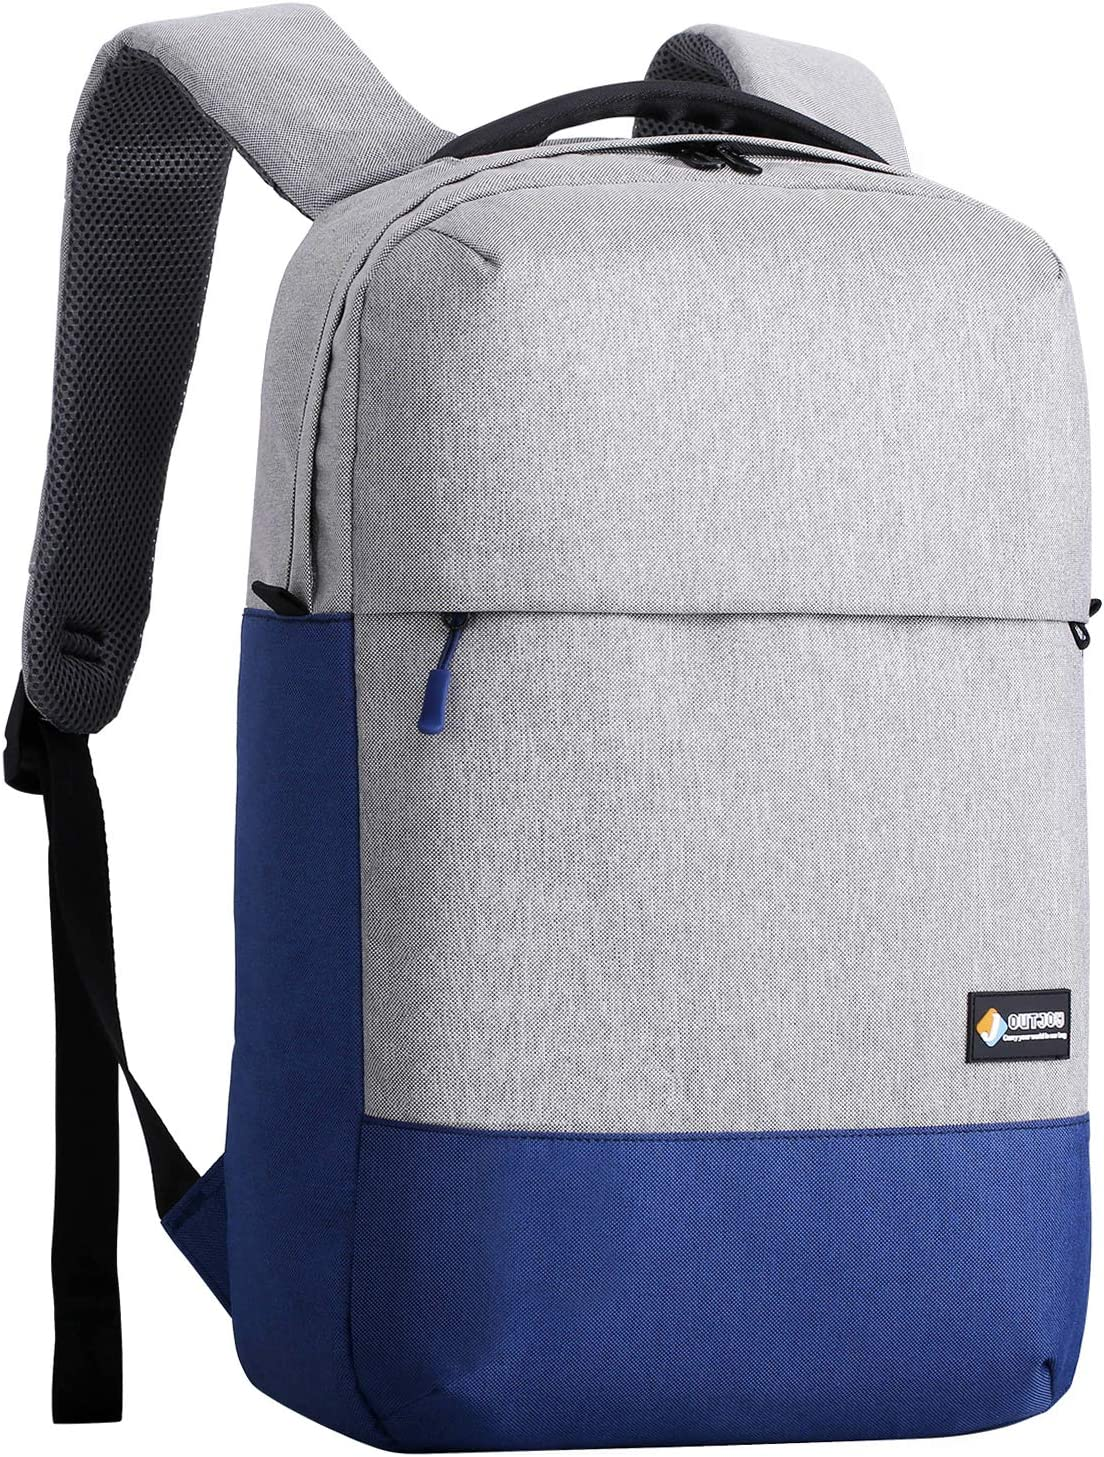 Amazon Com Outjoy Laptop Backpack For Men Lightweight Waterproof Anti Theft Travel Backpack School Backpack Computer Backpack Laptop Bag For 15 6 Inches Notebooks For Business Work College Blue And Grey